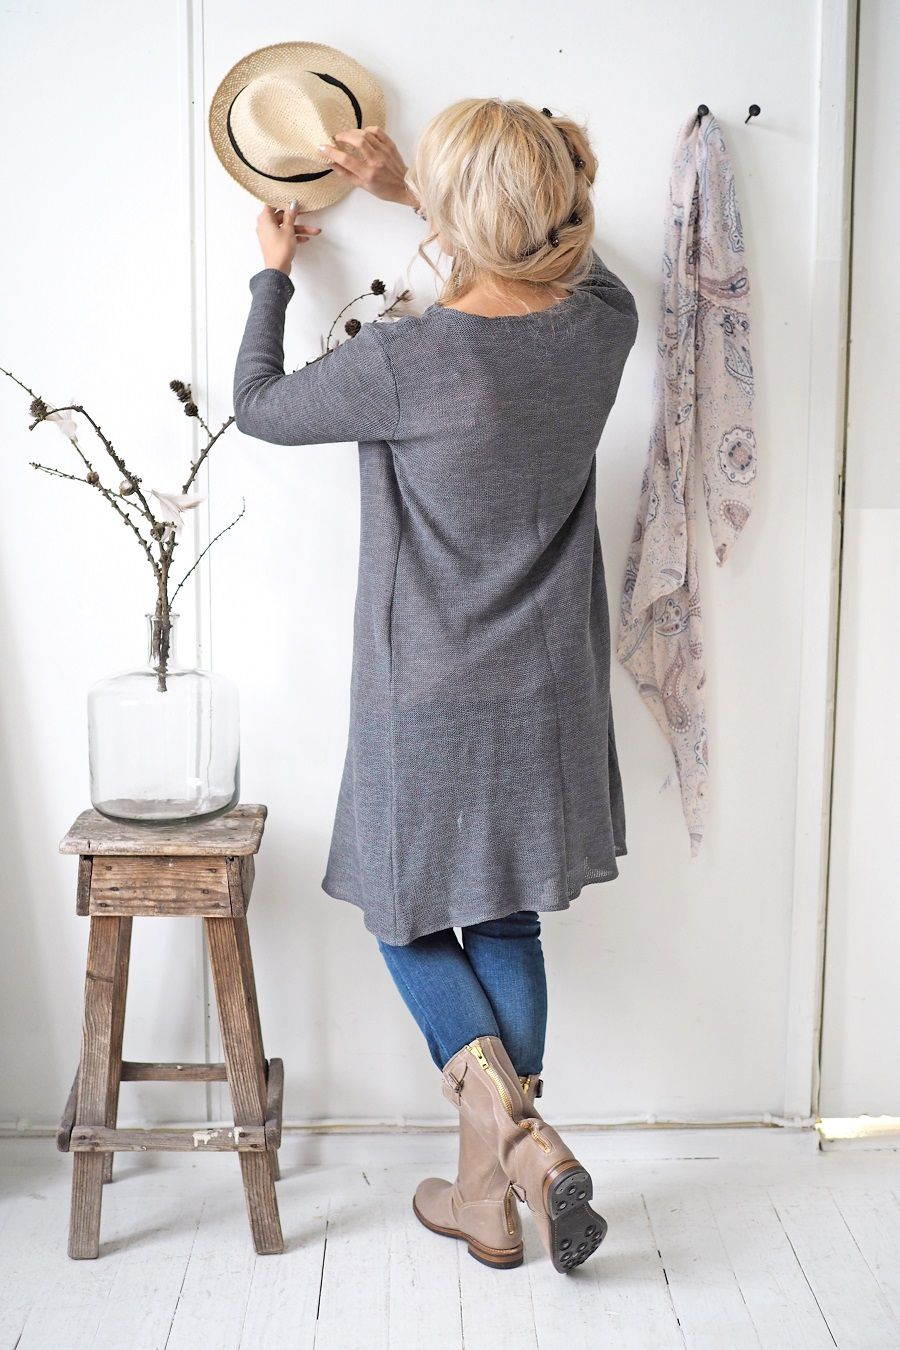 BYPIAS Knitted linen cardigan / @bypiaslifestyle www.bypias.com